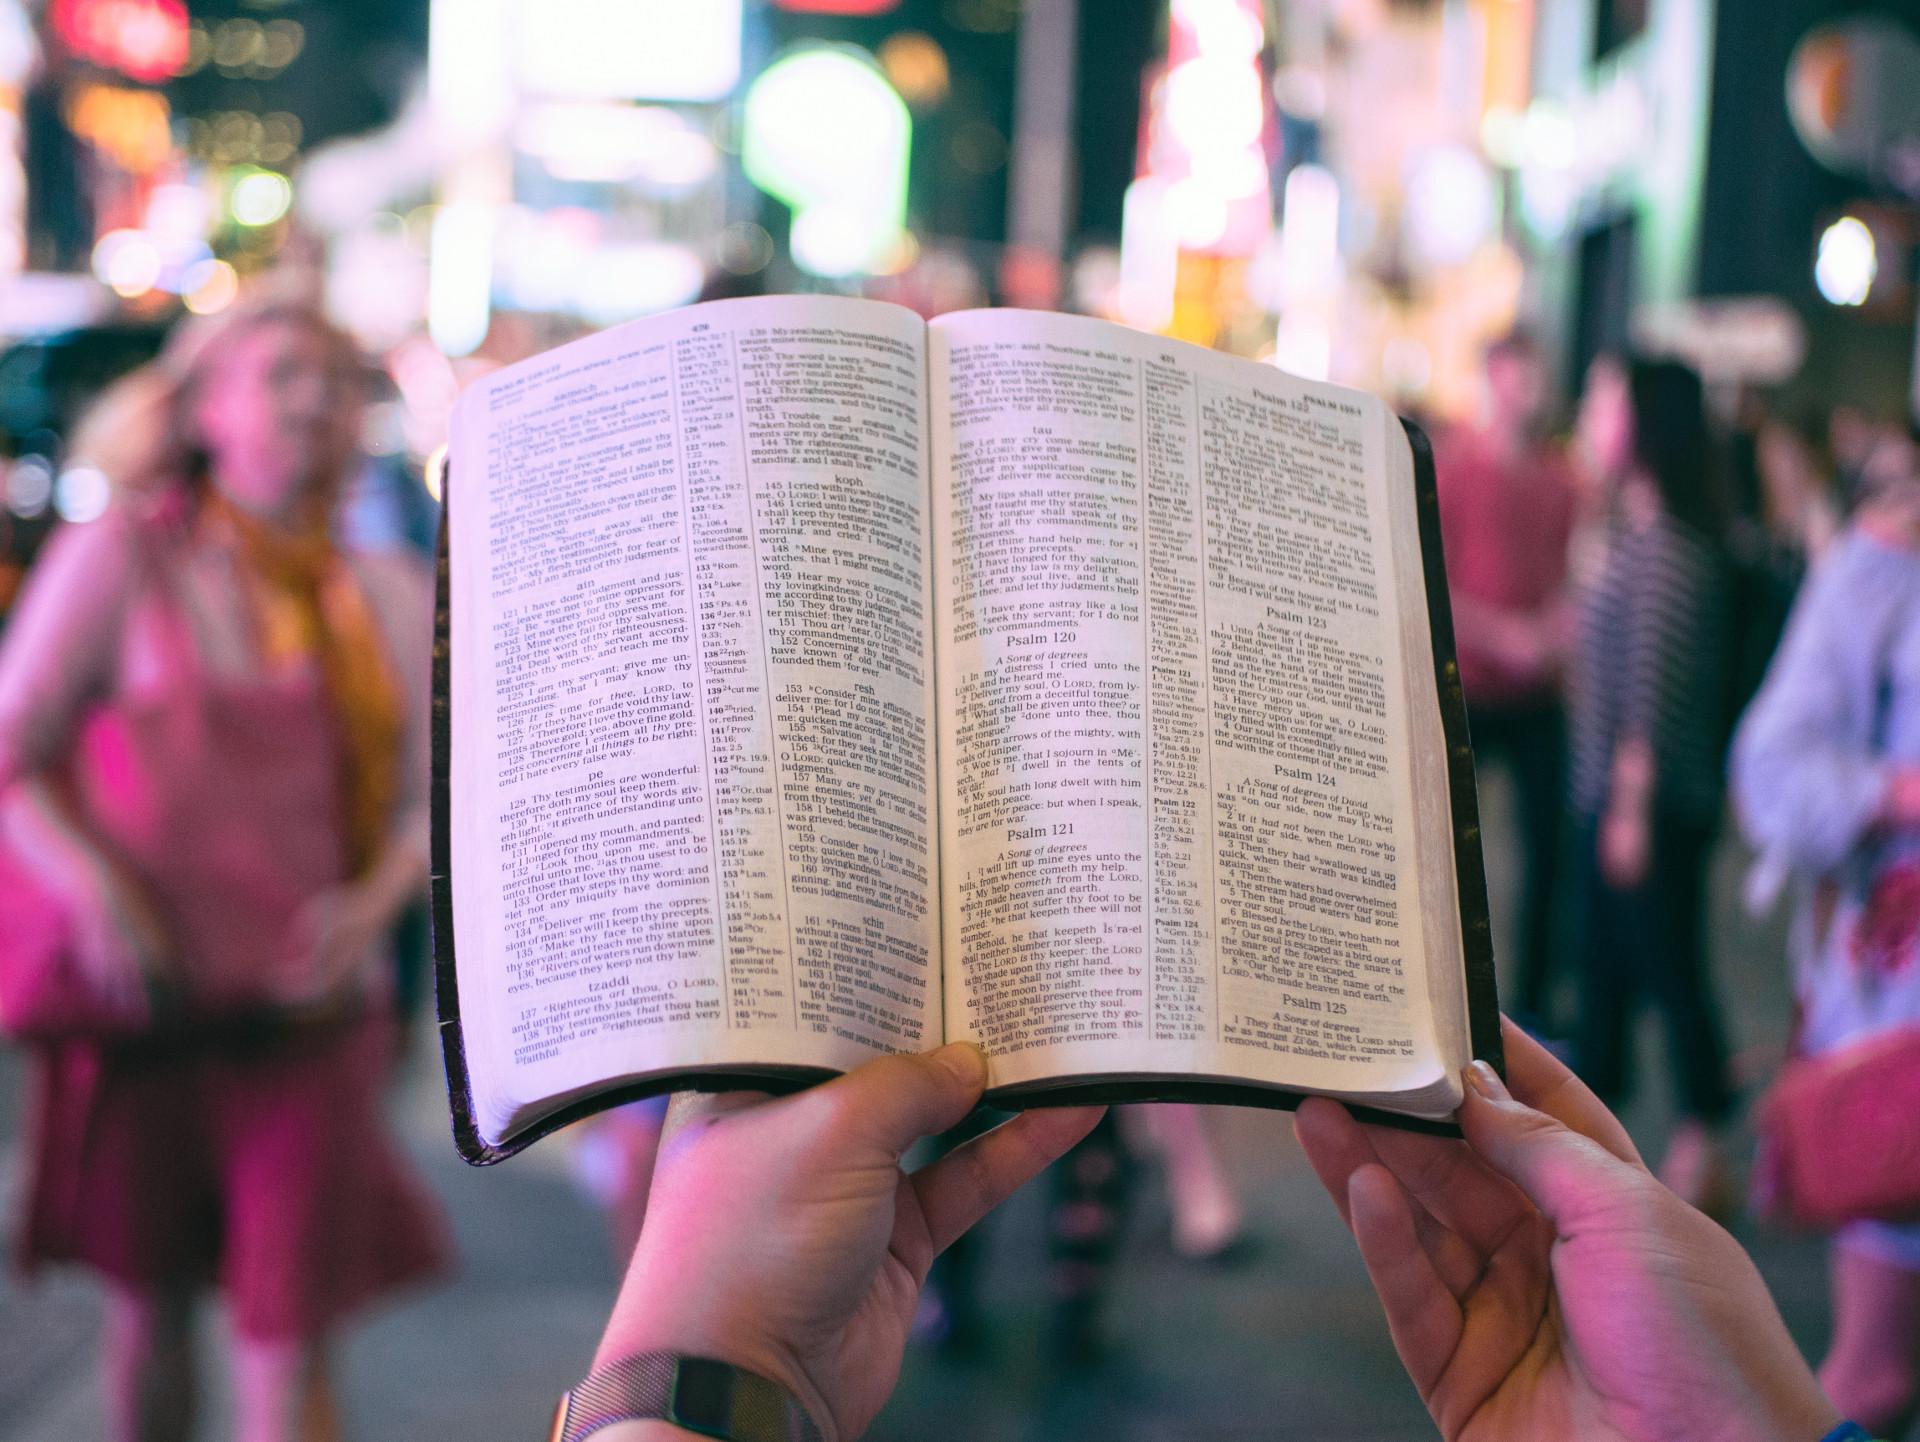 Can Certain Apologetics Hurt Christianity More Than Help It?